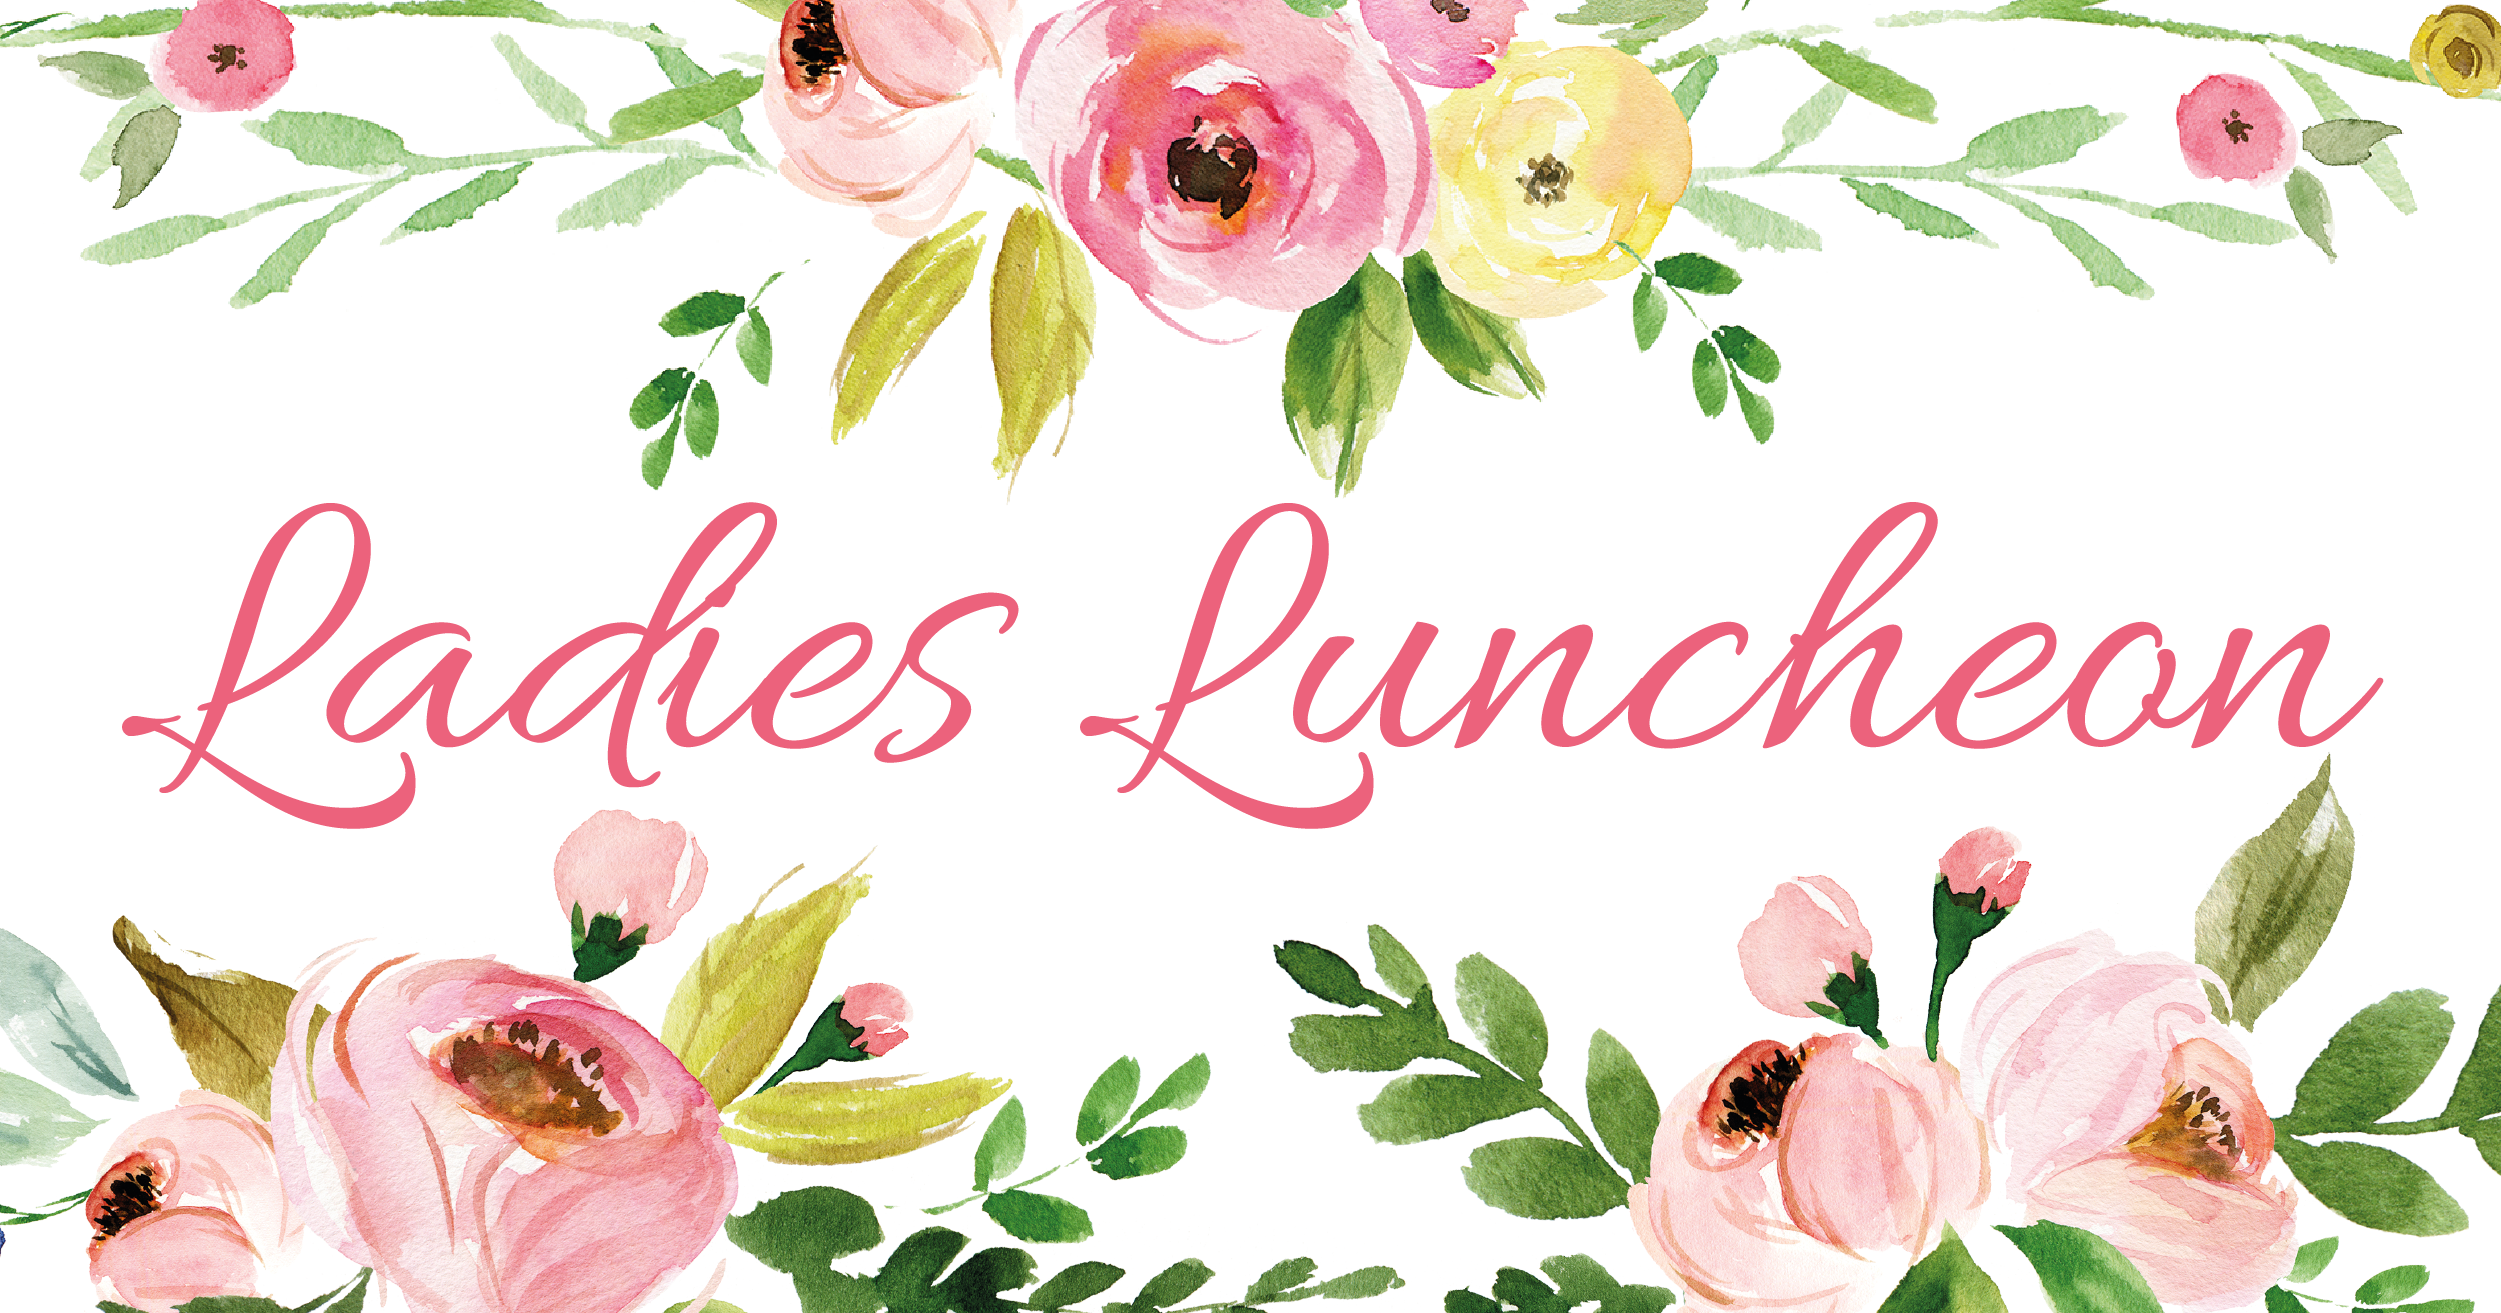 Clearwater yacht club ladies. Luncheon clipart lunch date